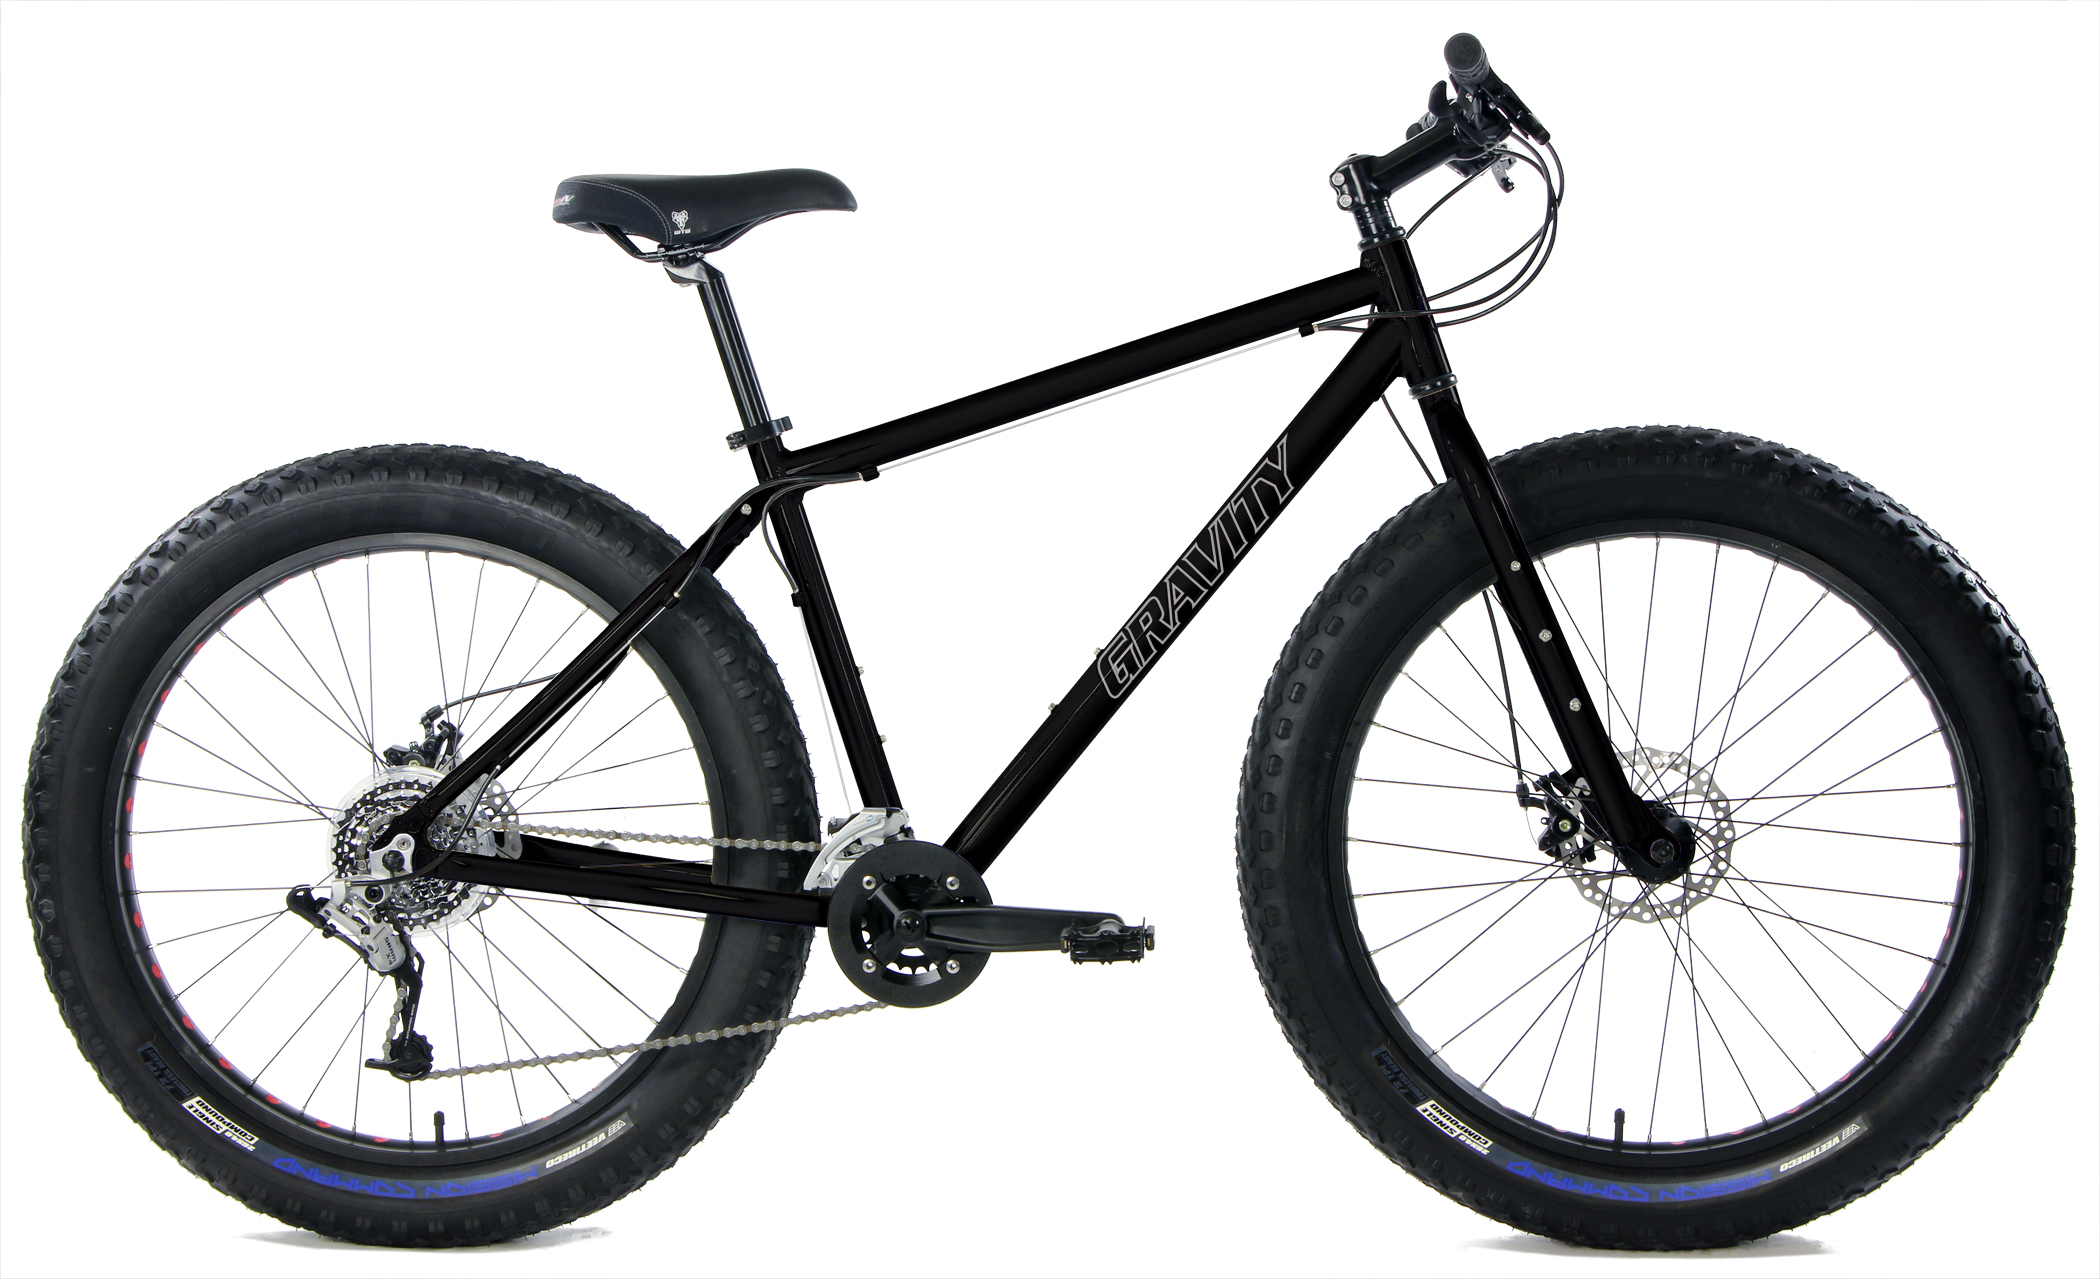 Bikes 2018 Gravity Bullseye Monster Shimano SRAM X4 24 Speed Fat Tire Bike Image